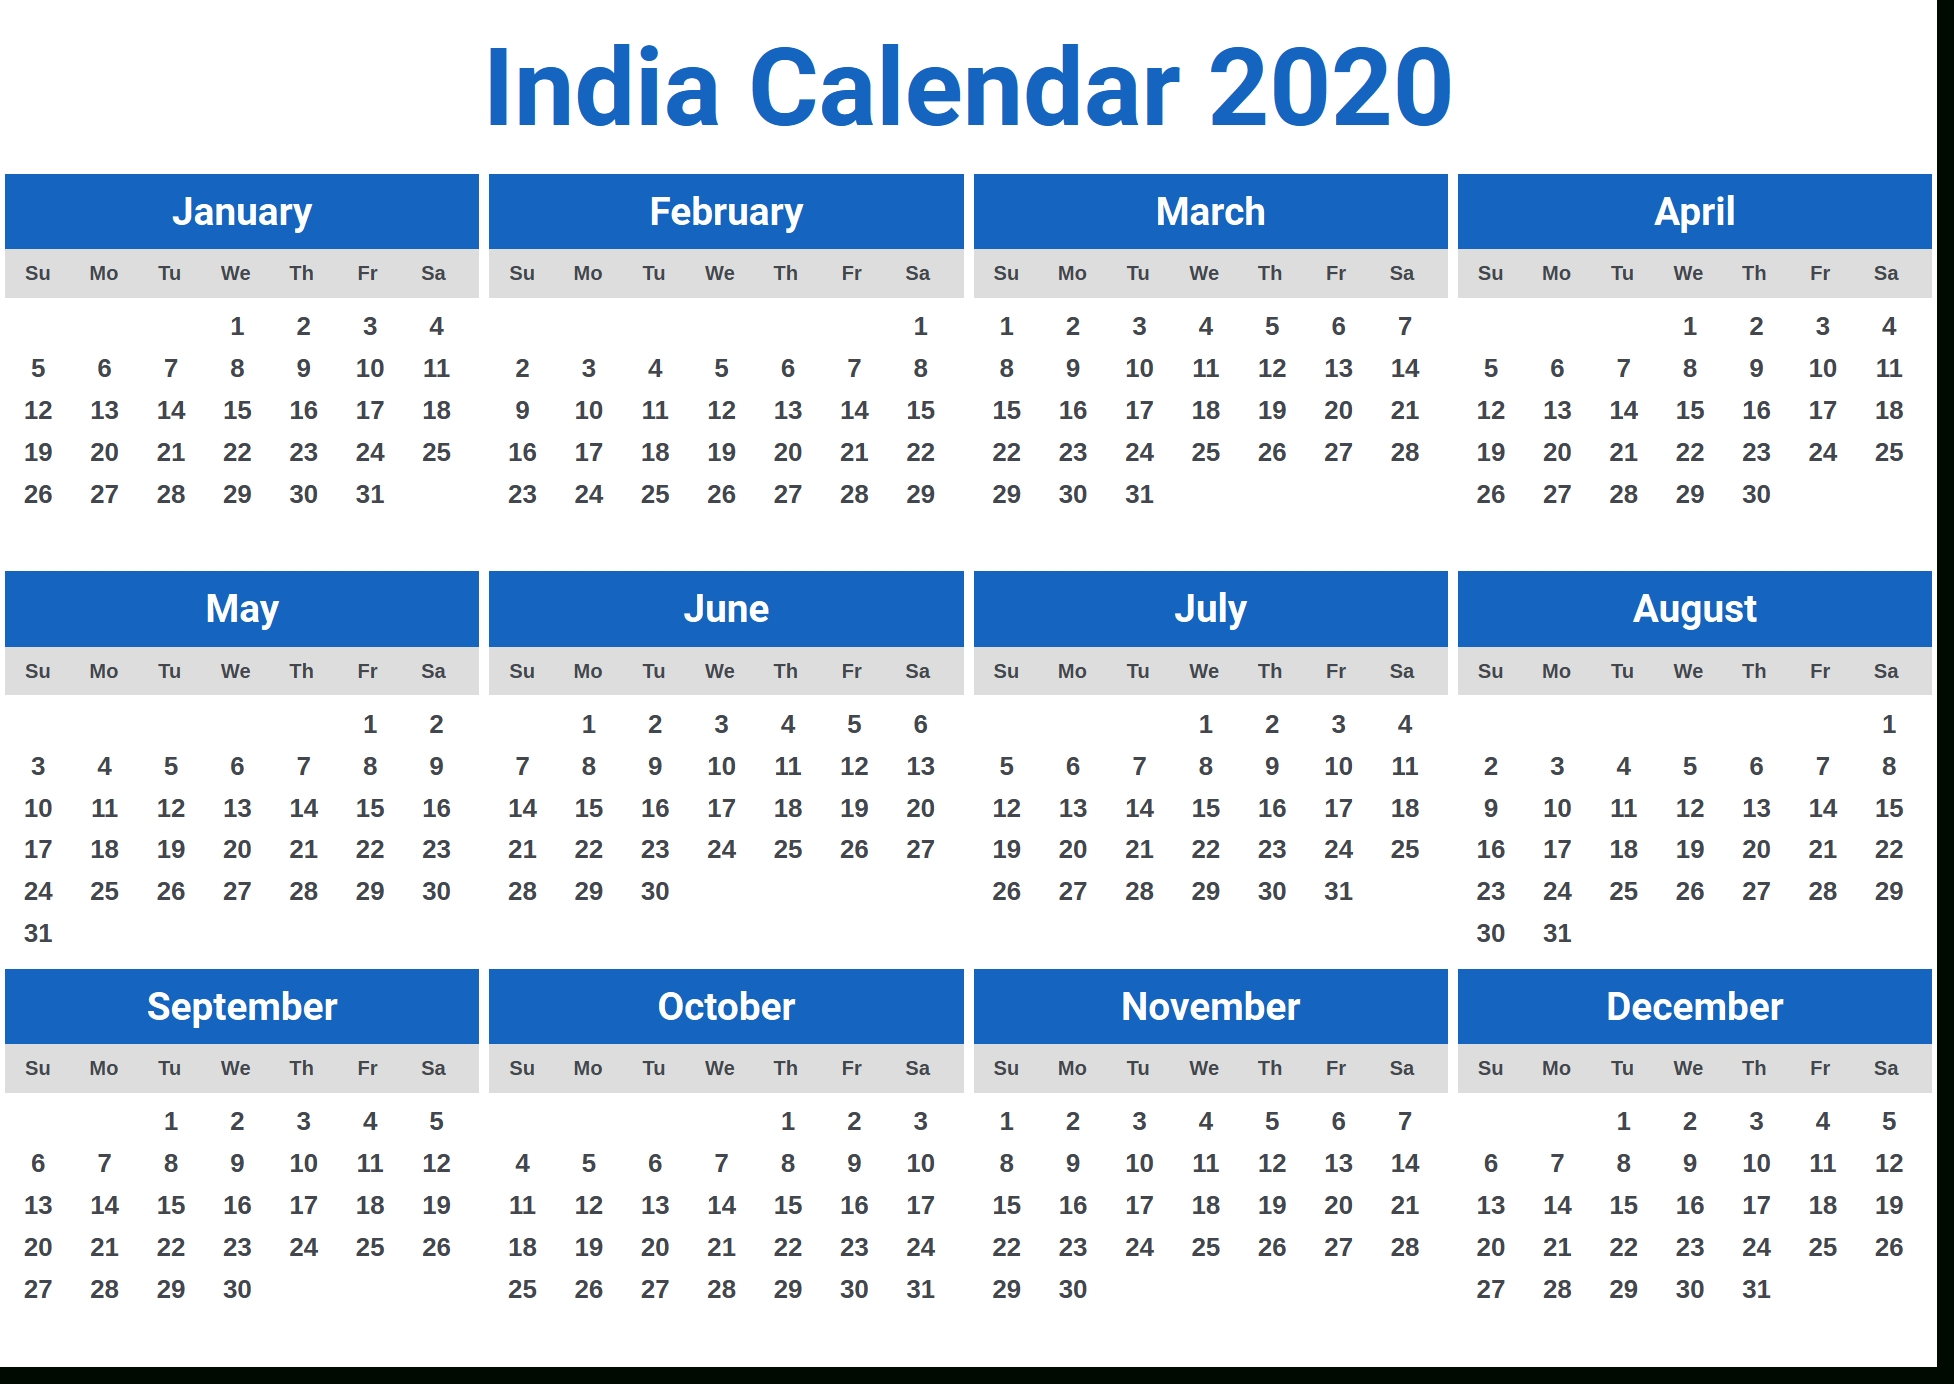 Image For India Calendar 2020 In 2019 | Calendar 2020